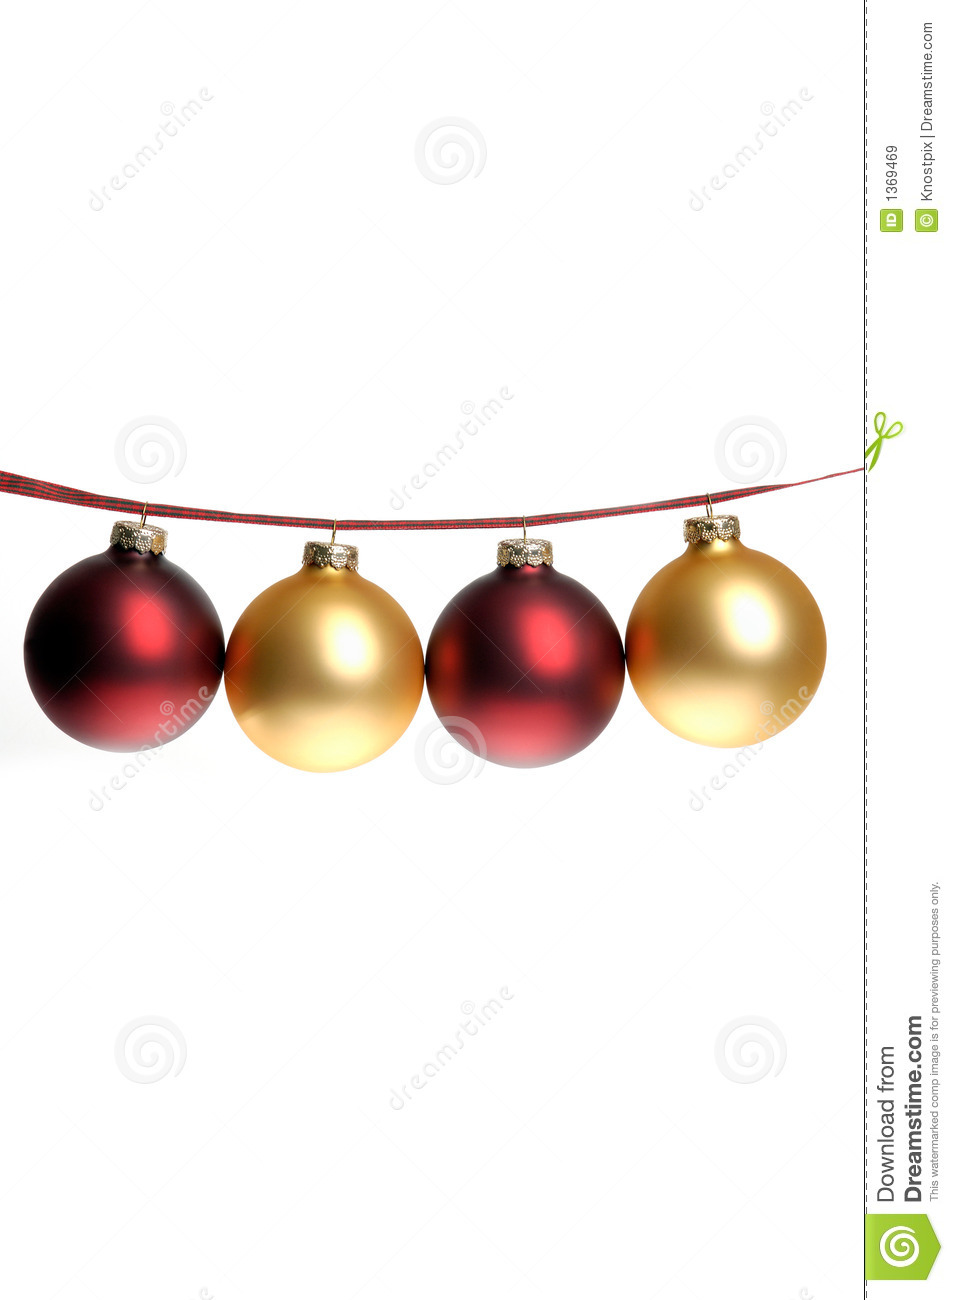 Gold and red ornaments - Christmas Photo Of Red And Gold Ornaments Strung On Plaid Ribbon